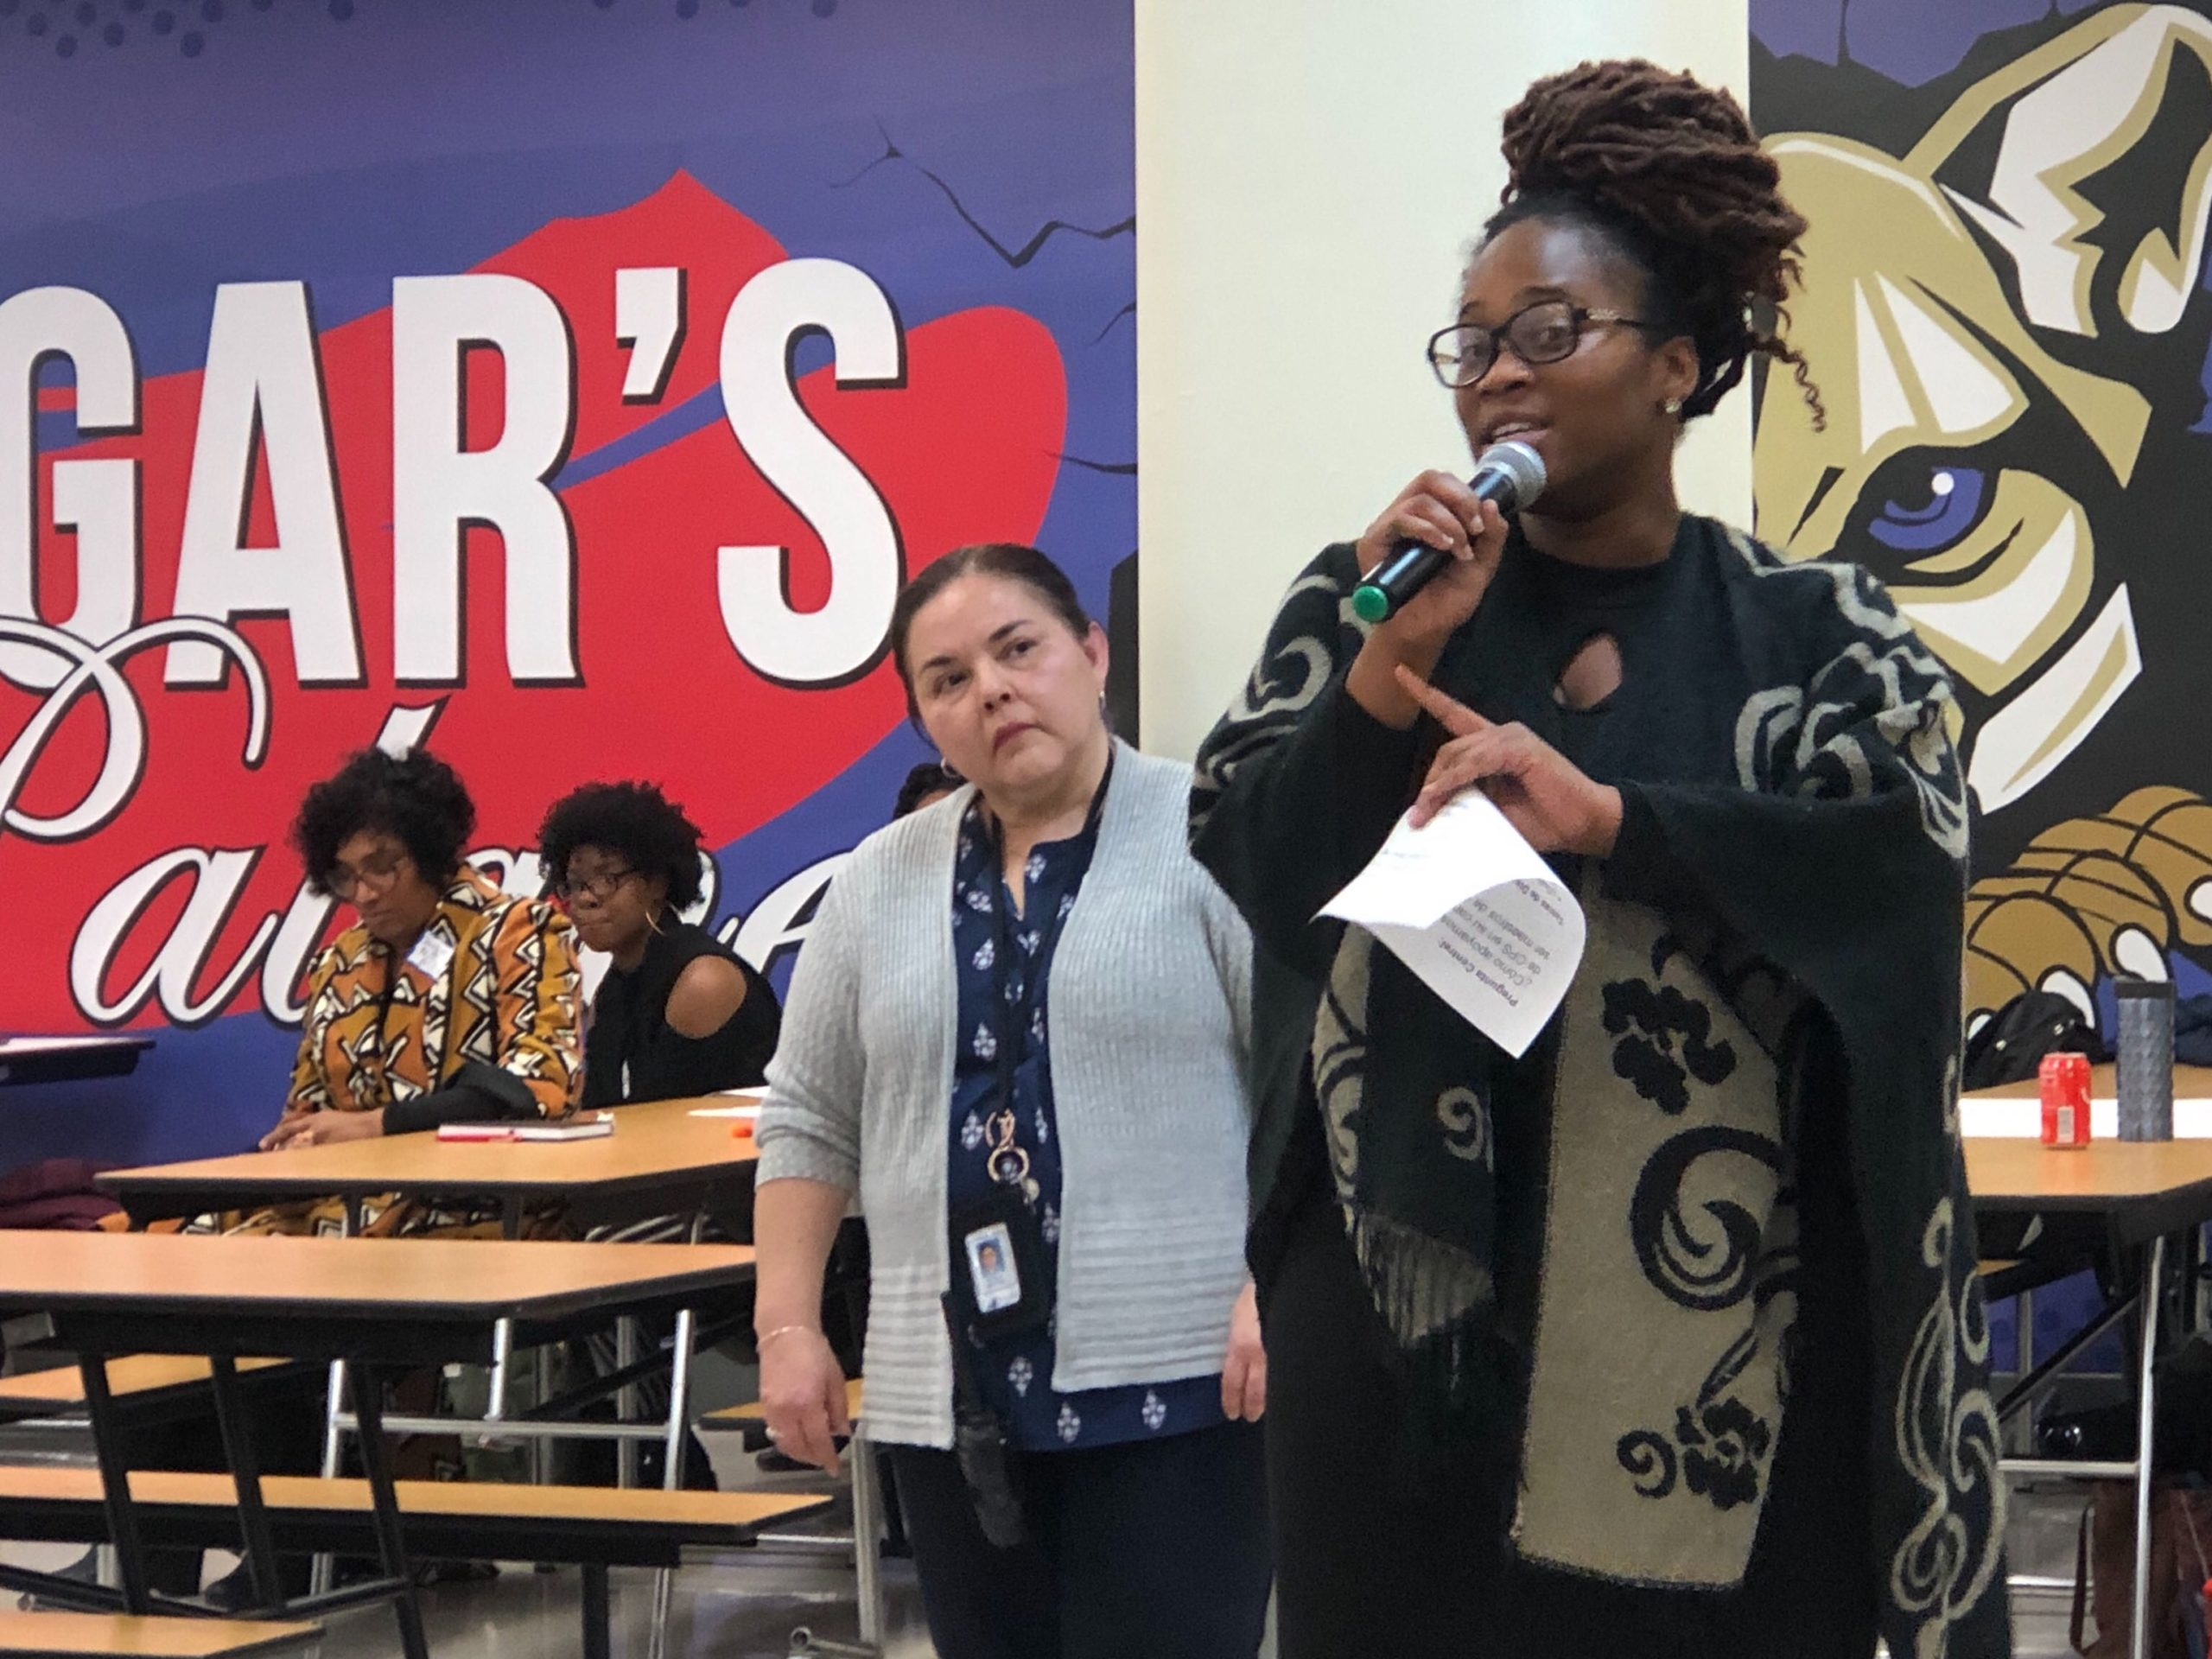 Chikamso Odume explains why she left teaching after moving to Chicago for a Teach for America placement. She spoke at a meeting of the Chicago Board of Education's new workforce equity committee Monday.